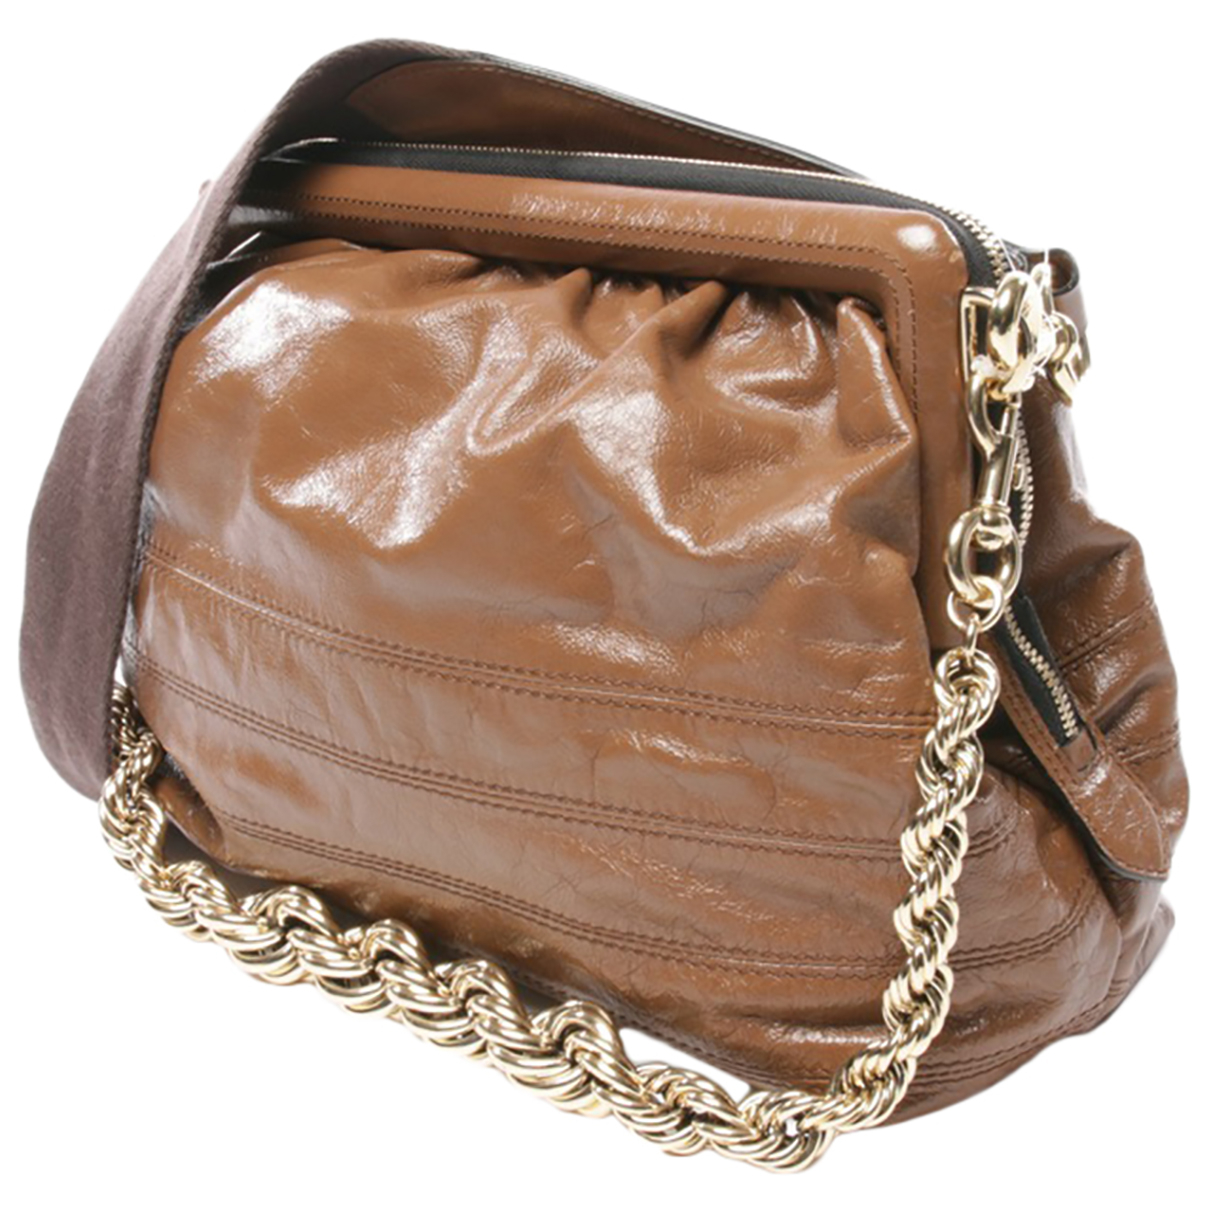 Marc Jacobs \N Brown Leather handbag for Women \N